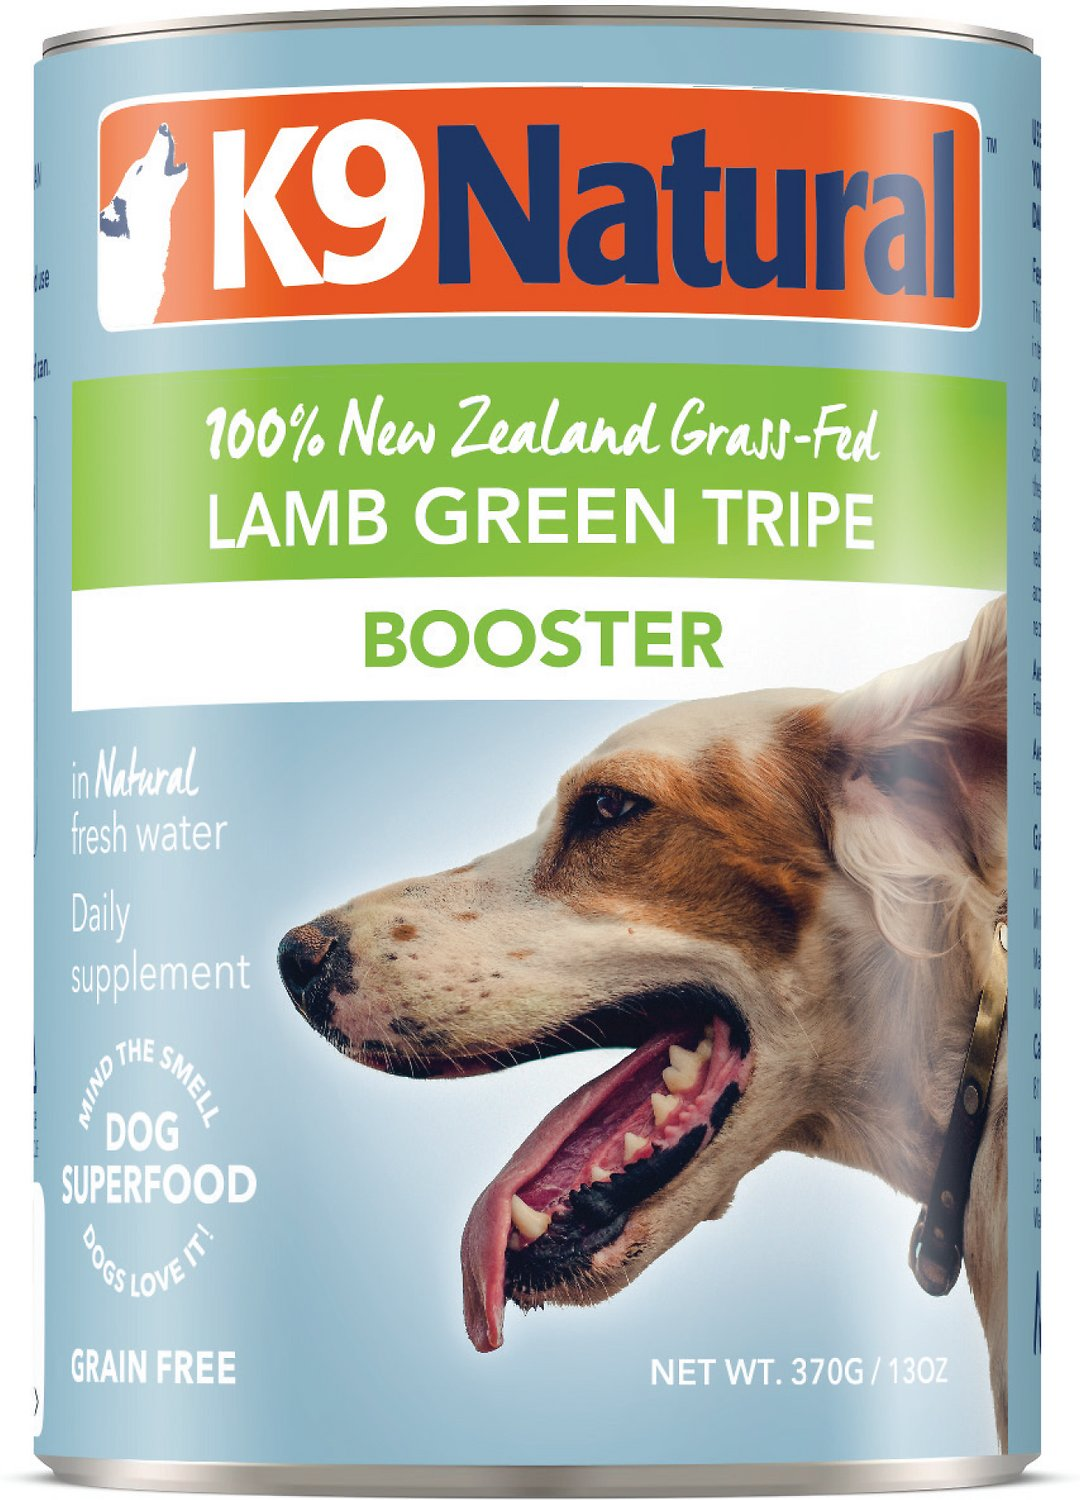 K9 Natural Booster Lamb Green Tripe Grain-Free Canned Dog Food, 13-oz